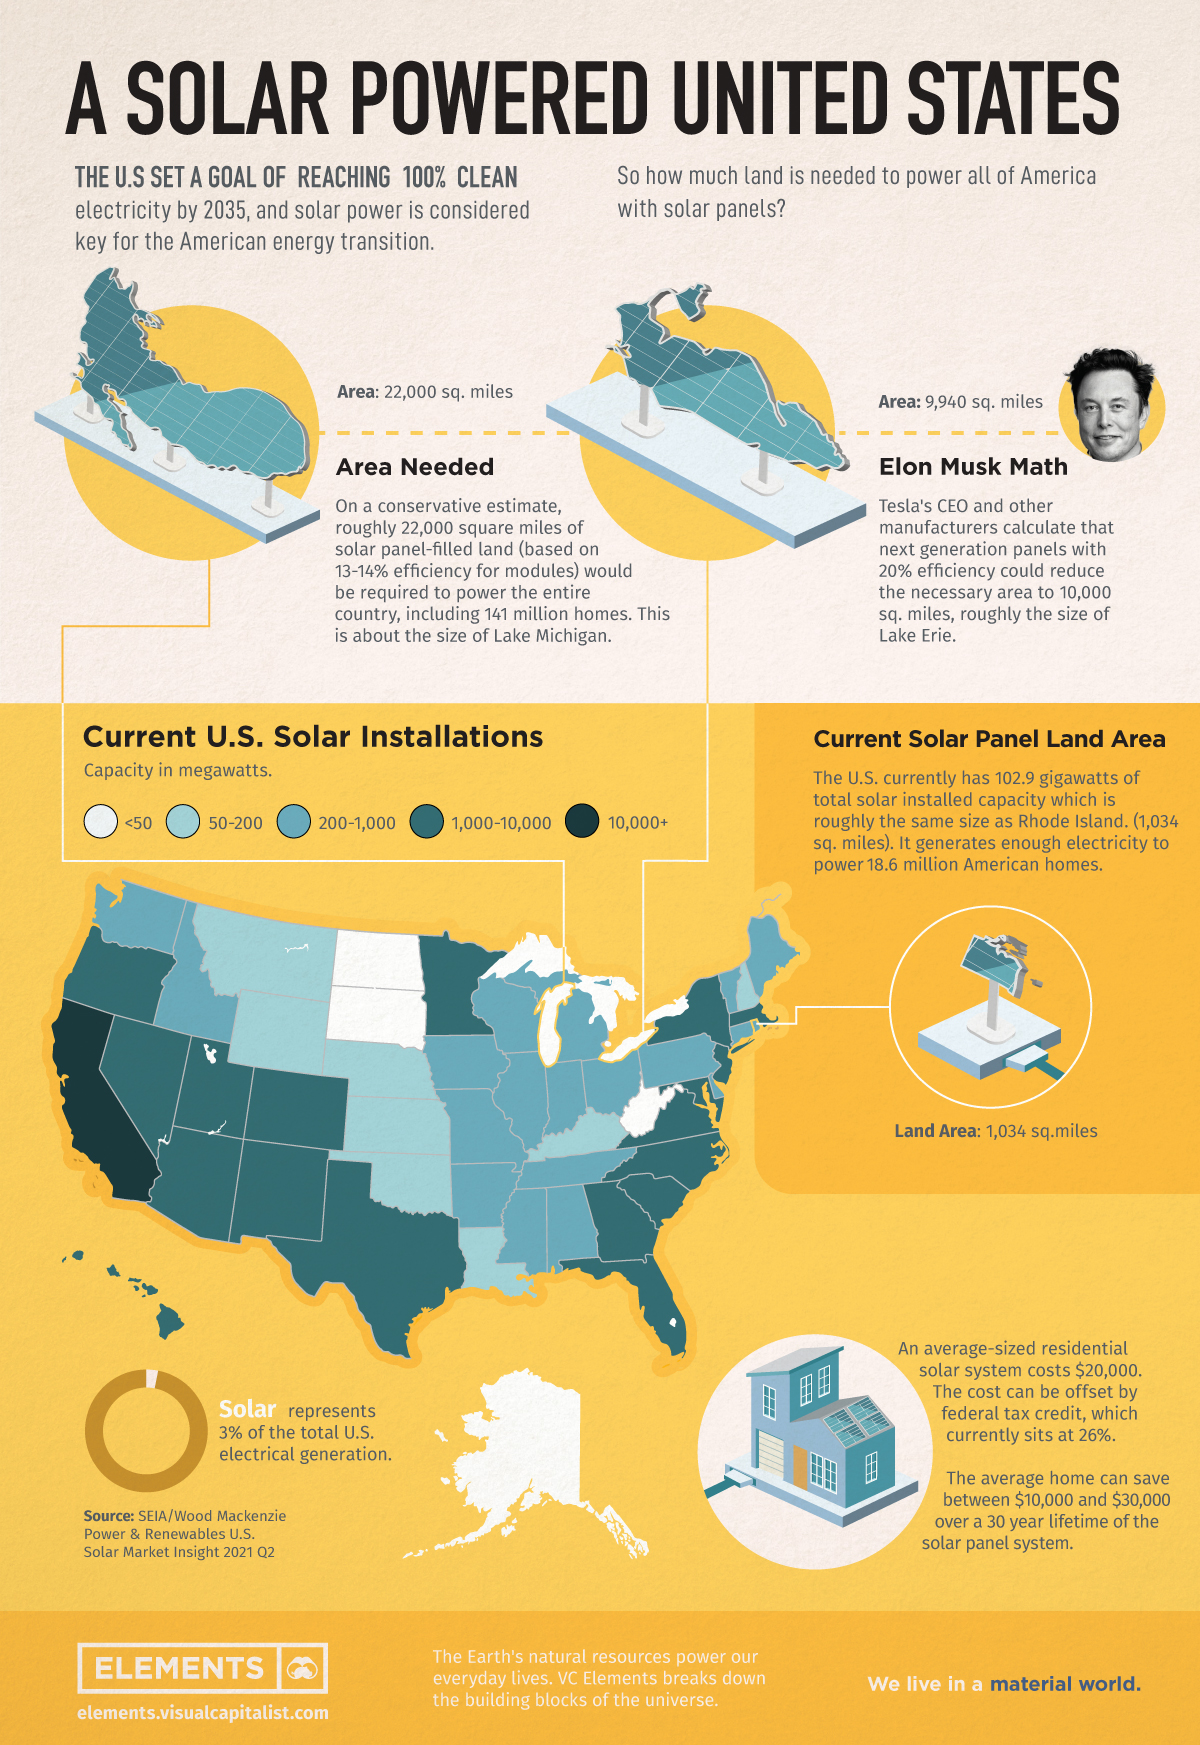 How much land would it take to power the U.S. with solar?